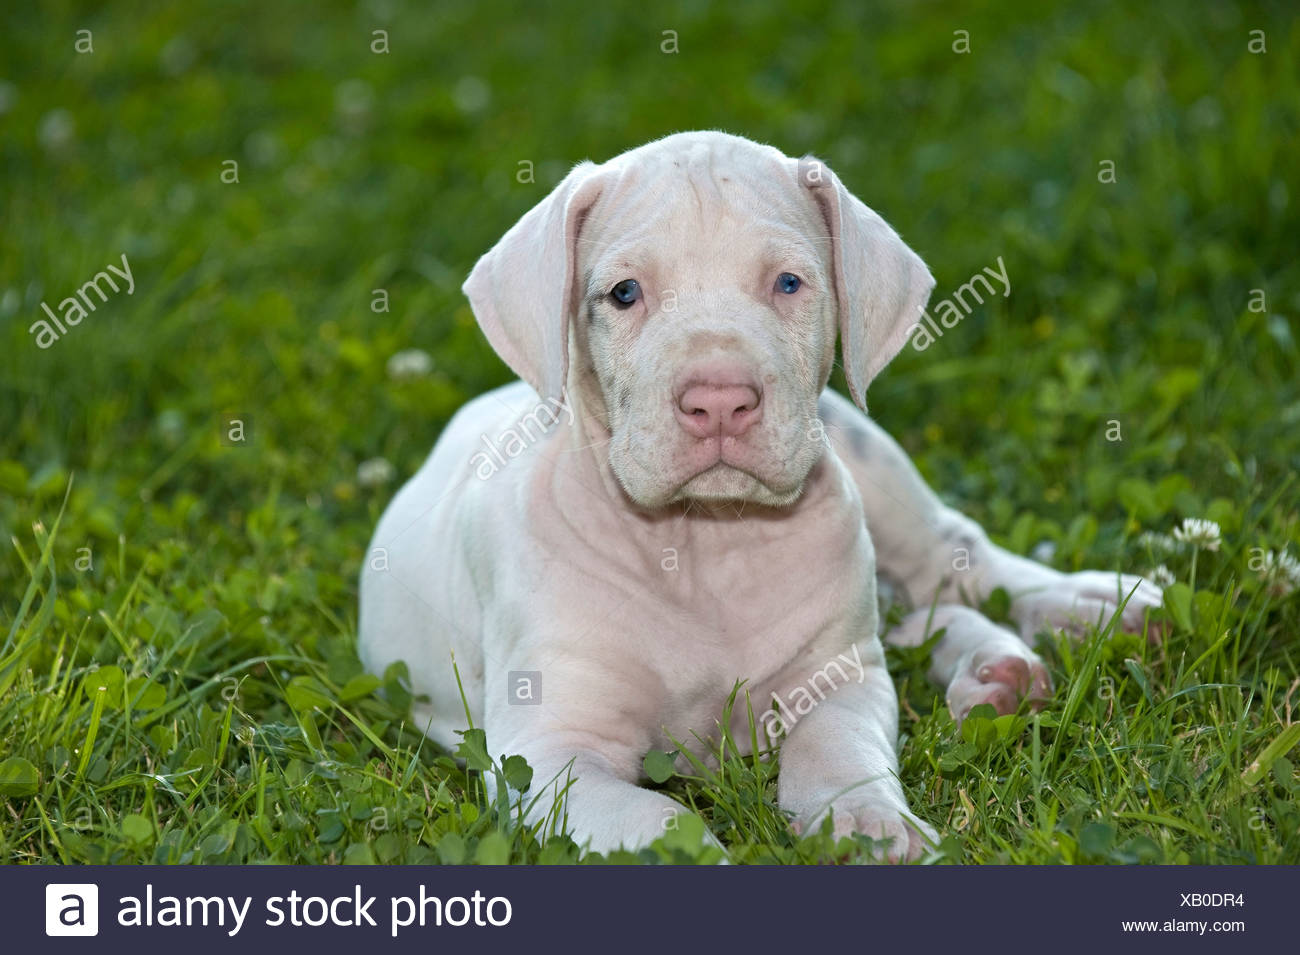 Great Dane White Puppy 6 Weeks Old Lying On A Meadow Stock Photo Alamy